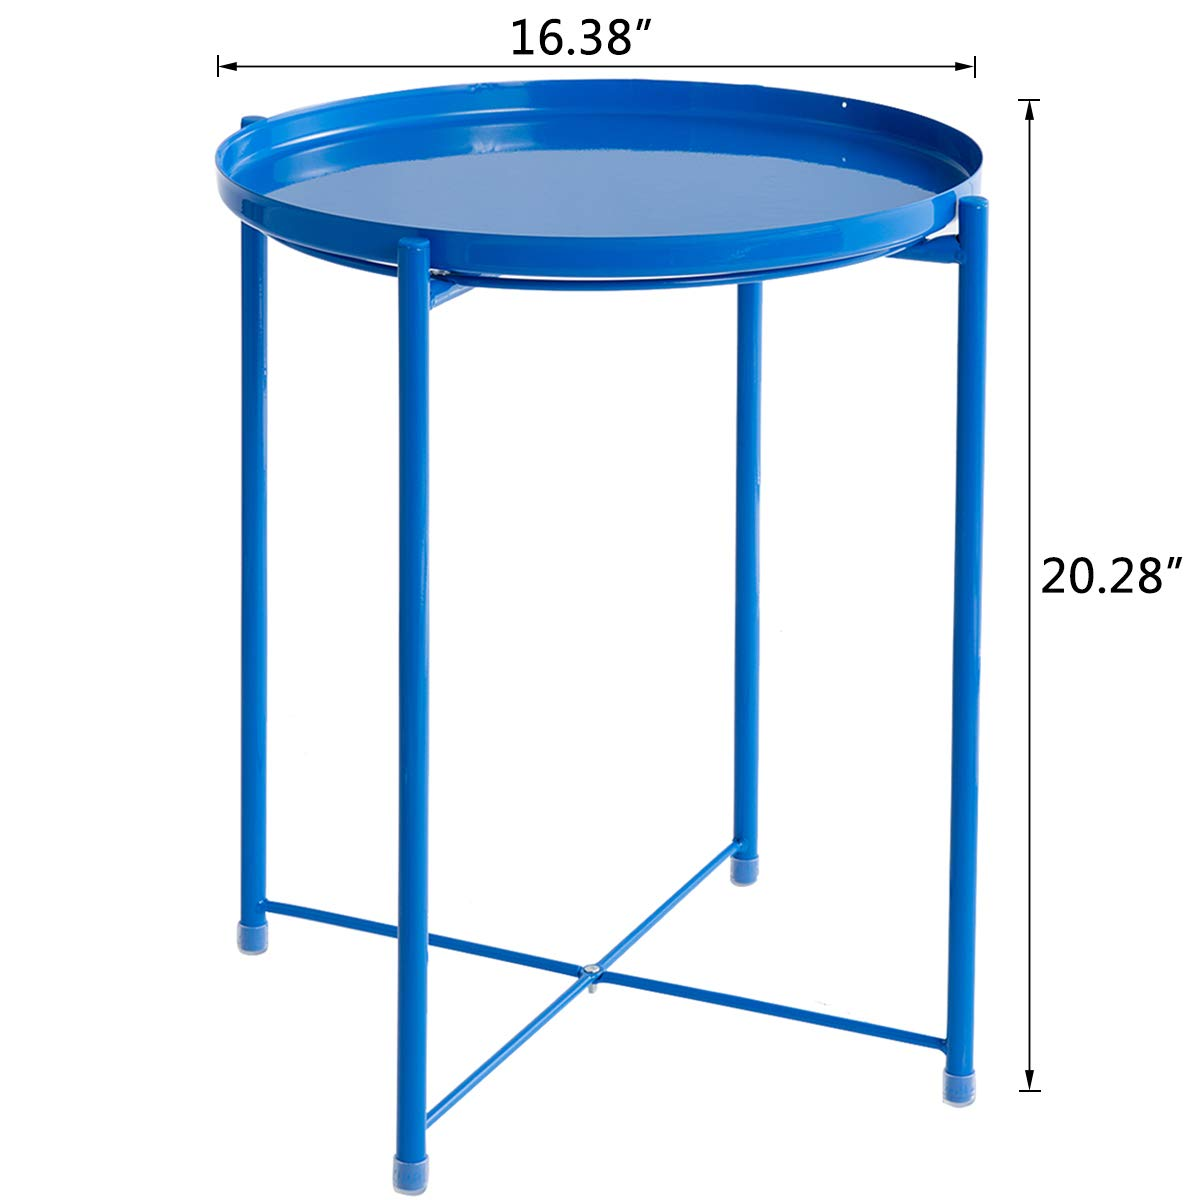 HollyHOME Tray Metal End Table, Sofa Table Small Round Side Tables, Anti-Rust and Waterproof Outdoor Indoor Snack Table, Accent Coffee Table, H 20.28 x D 16.38 , Water Bule